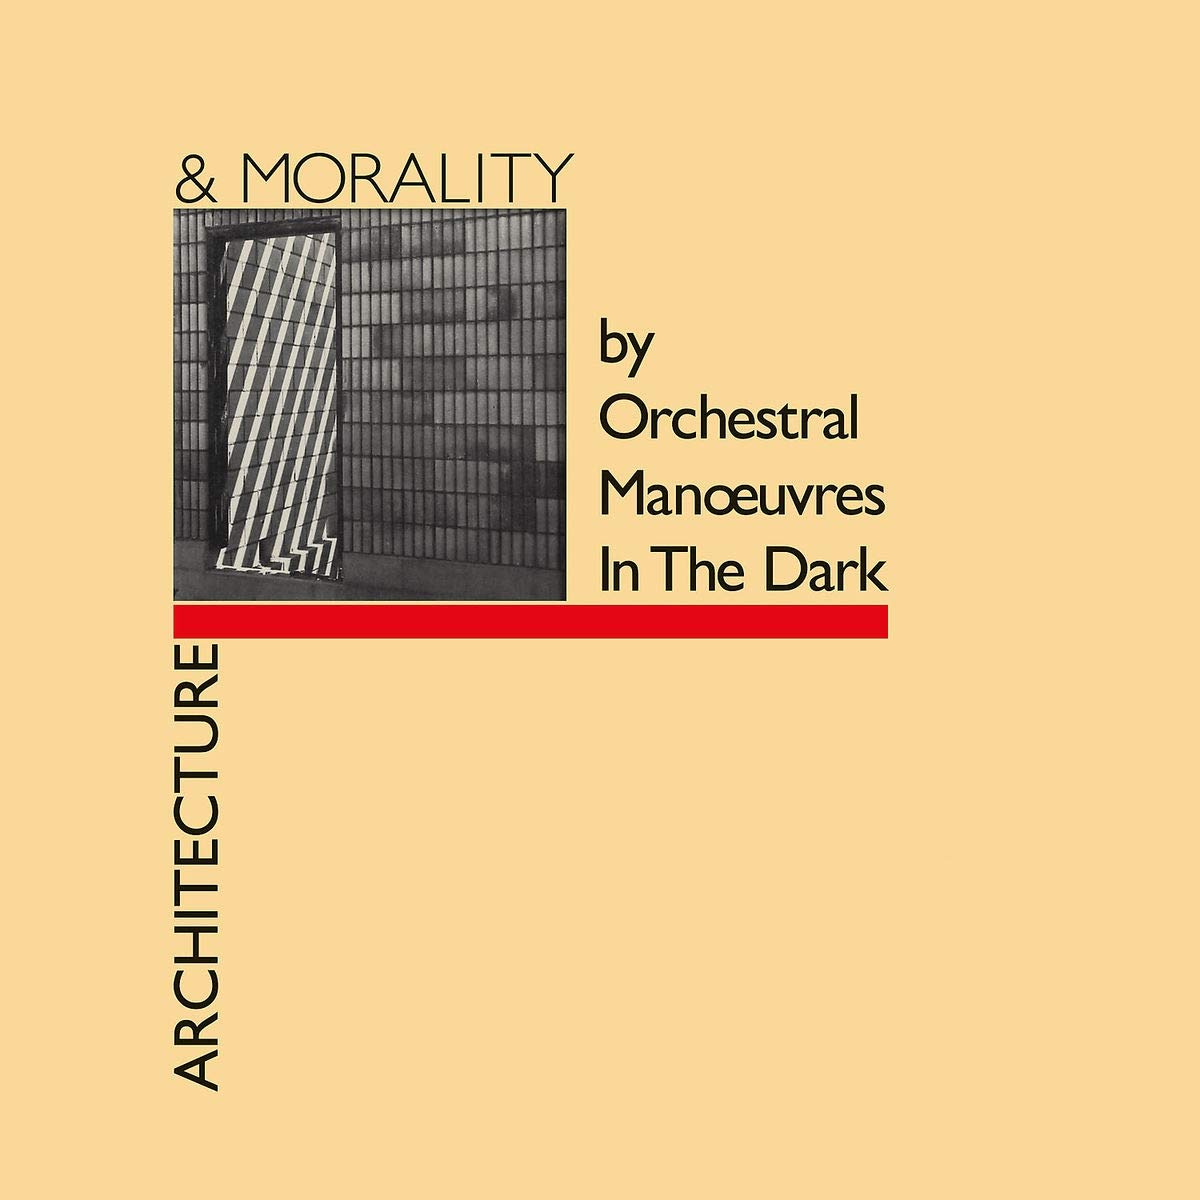 Vinilo : Omd ( Orchestral Manoeuvres in the Dark ) - Architecture & Morality (LP Vinyl)